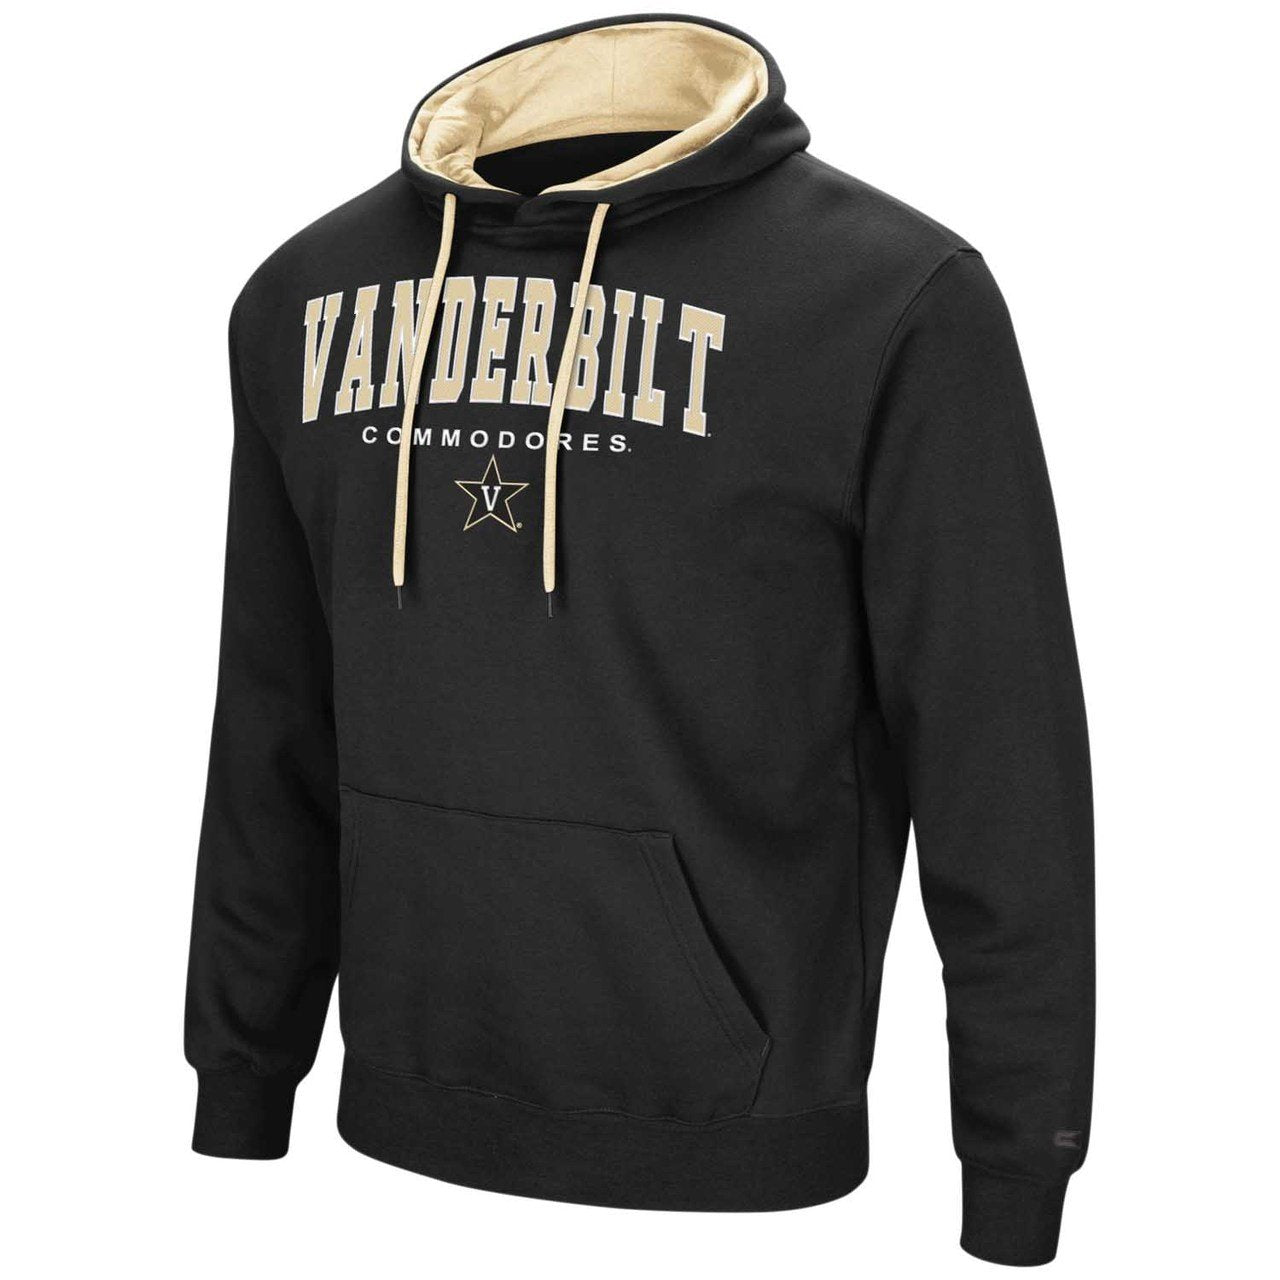 "Vanderbilt Commodores NCAA ""End Zone"" Pullover Hooded"